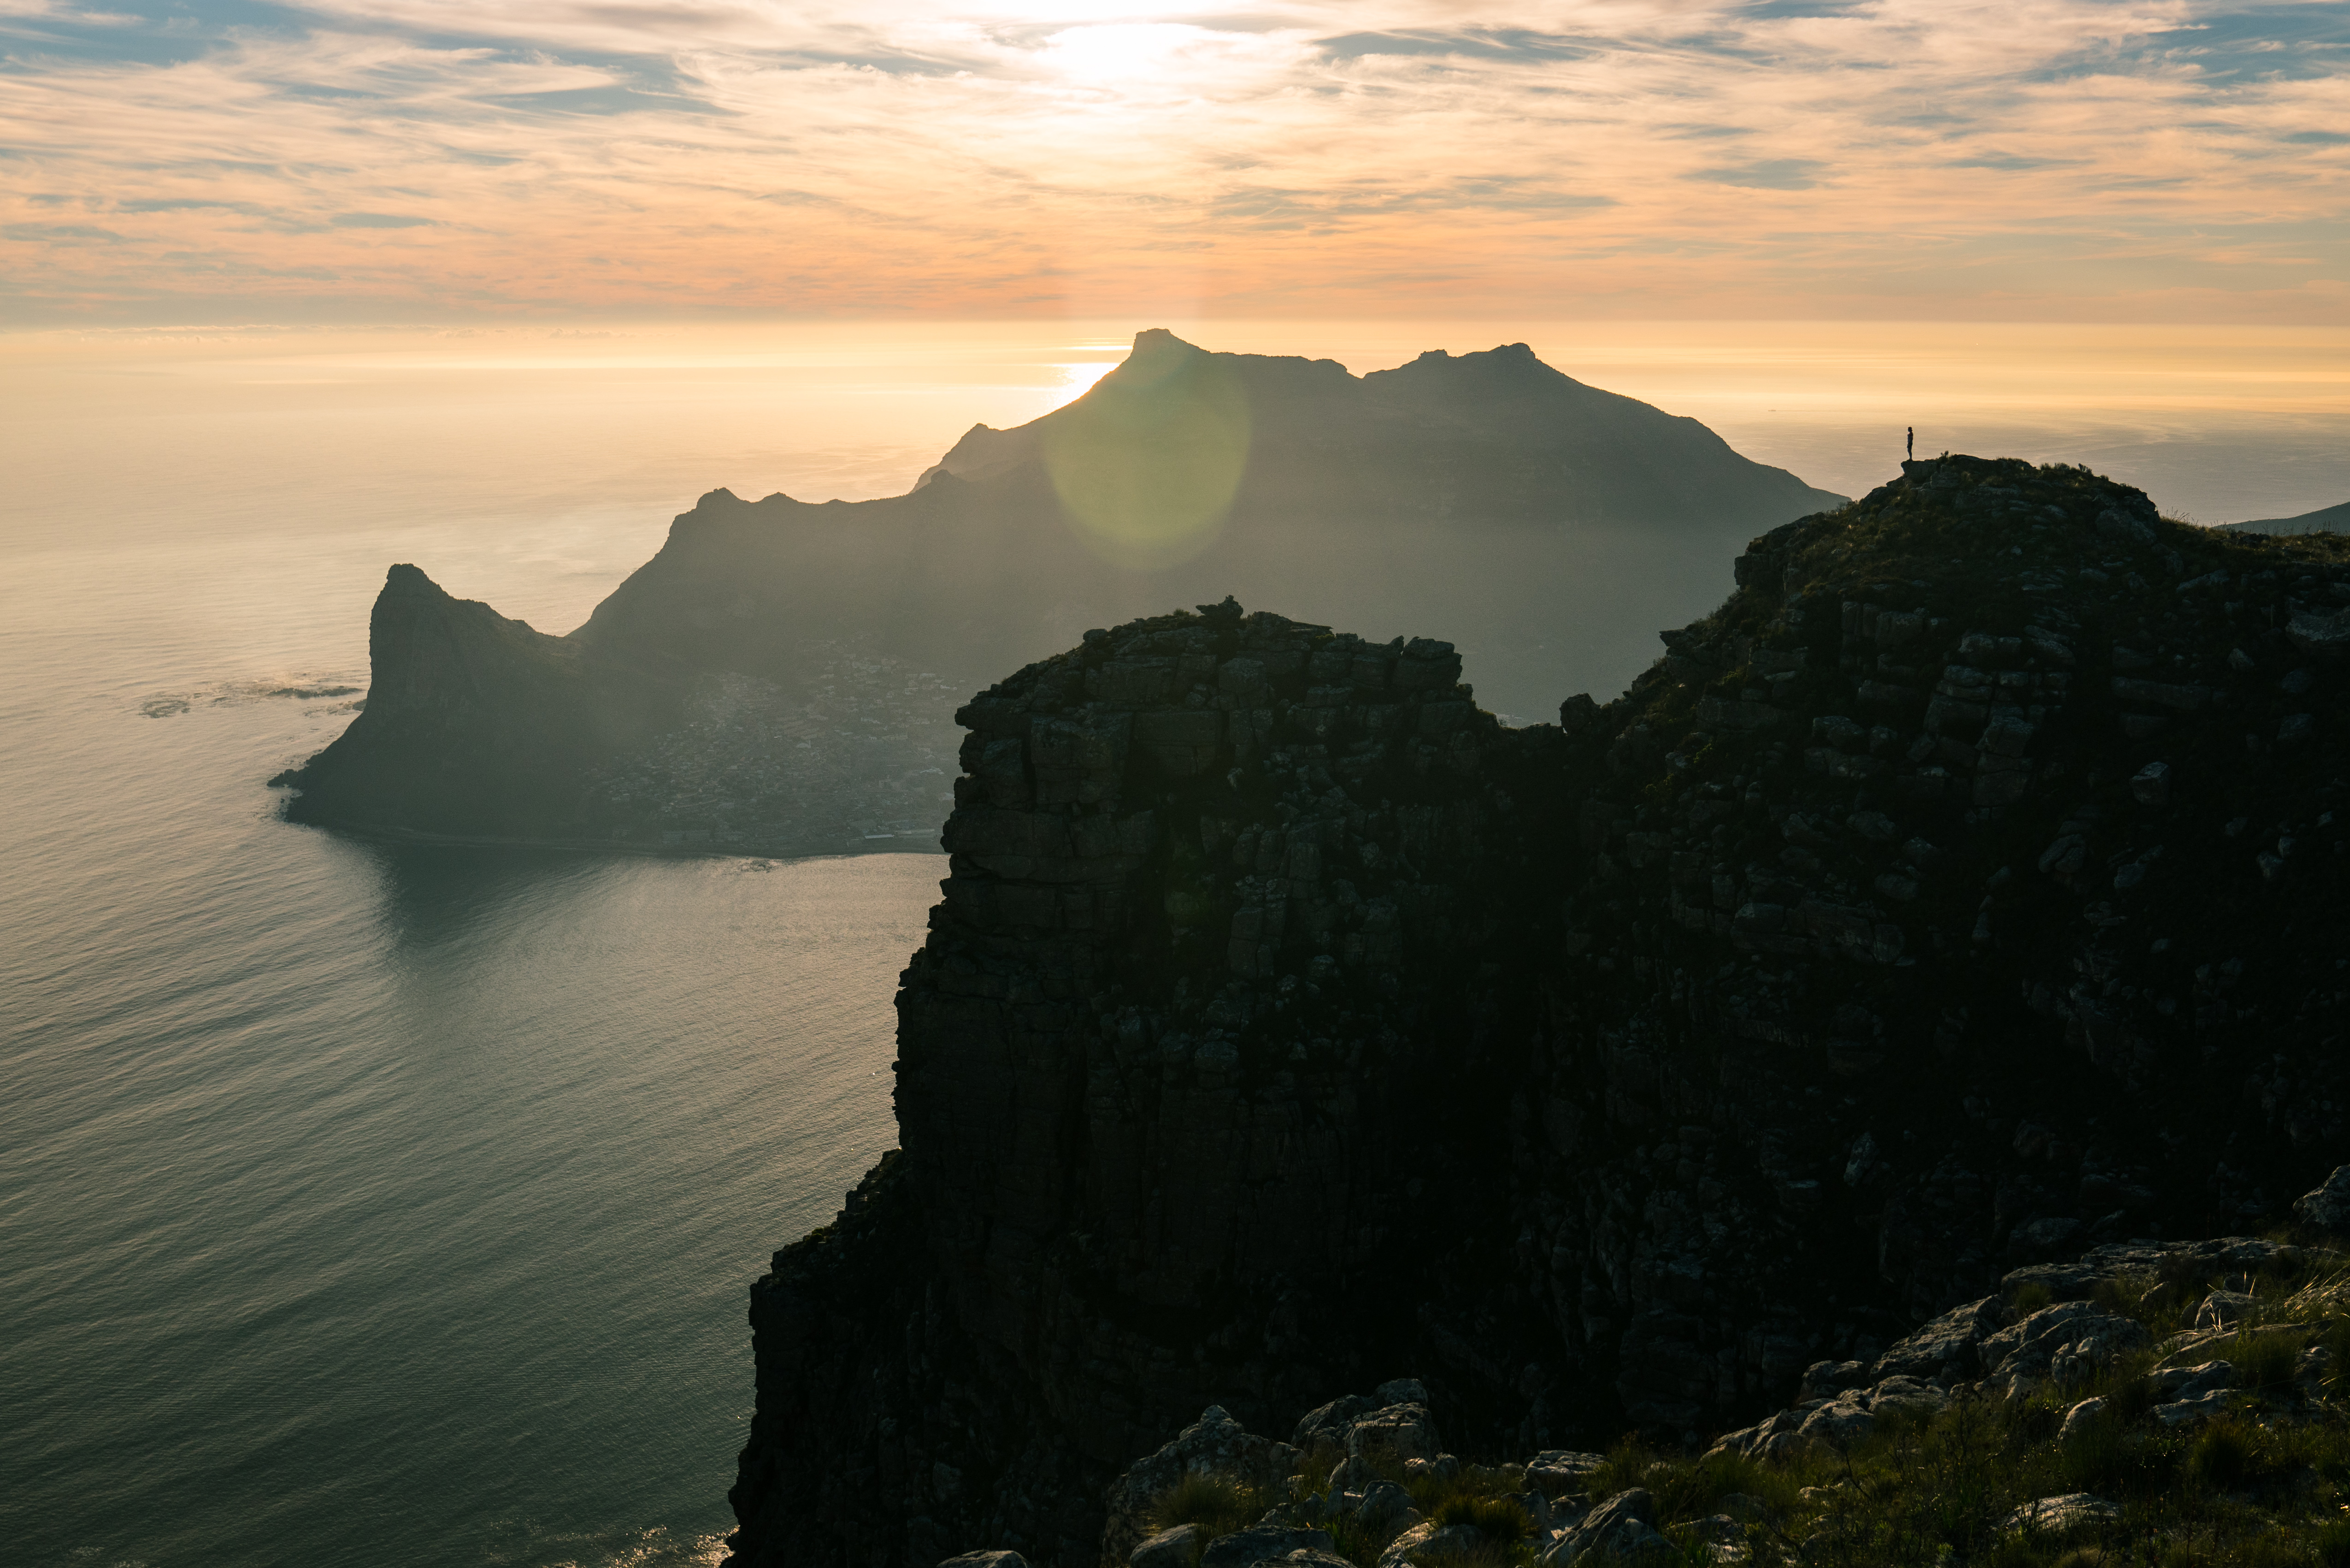 Ryan Sandes | Cape Town, South Africa